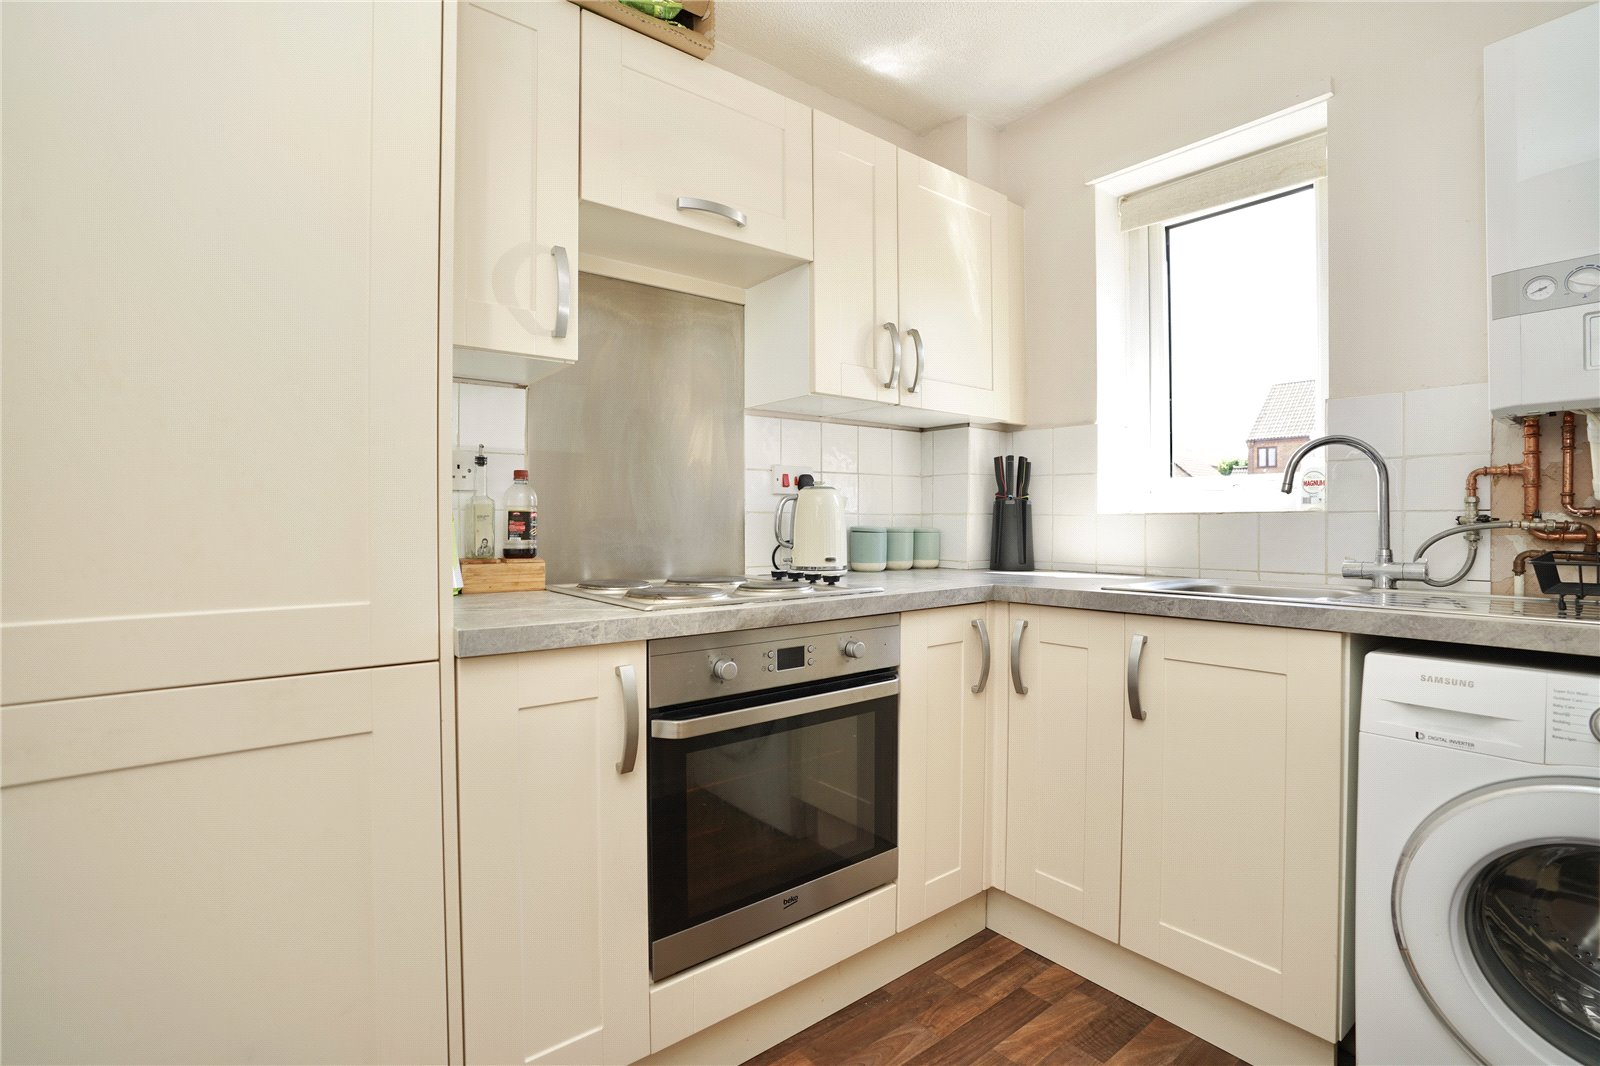 1 bed house for sale in Cornwallis Drive, Eaton Socon  - Property Image 1